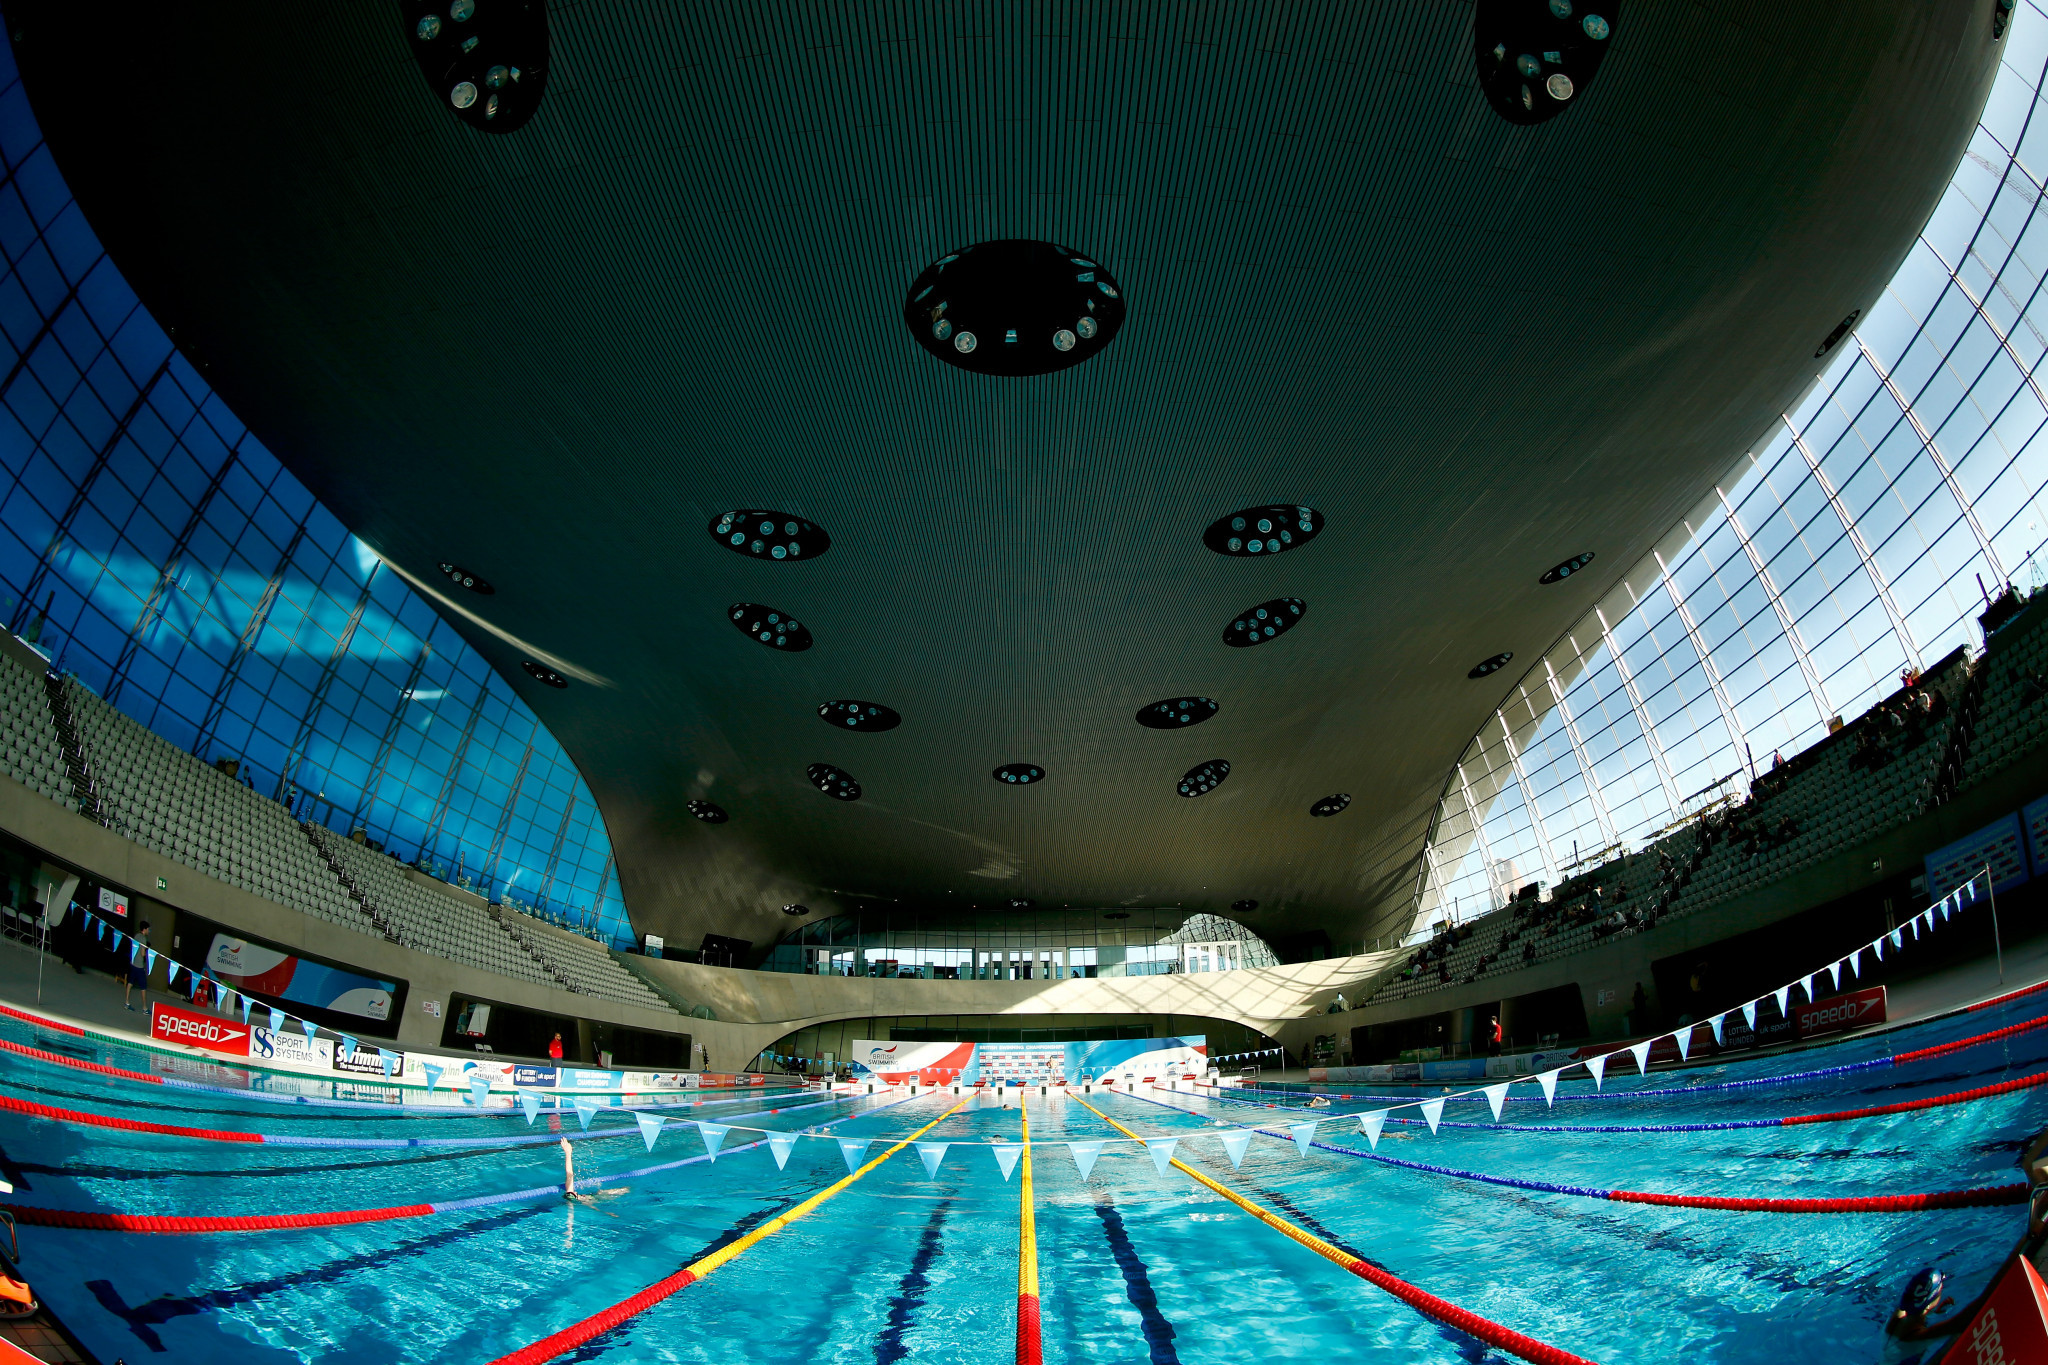 The London Aquatics Centre will play host to the 2019 World Para Swimming Championships ©Getty Images